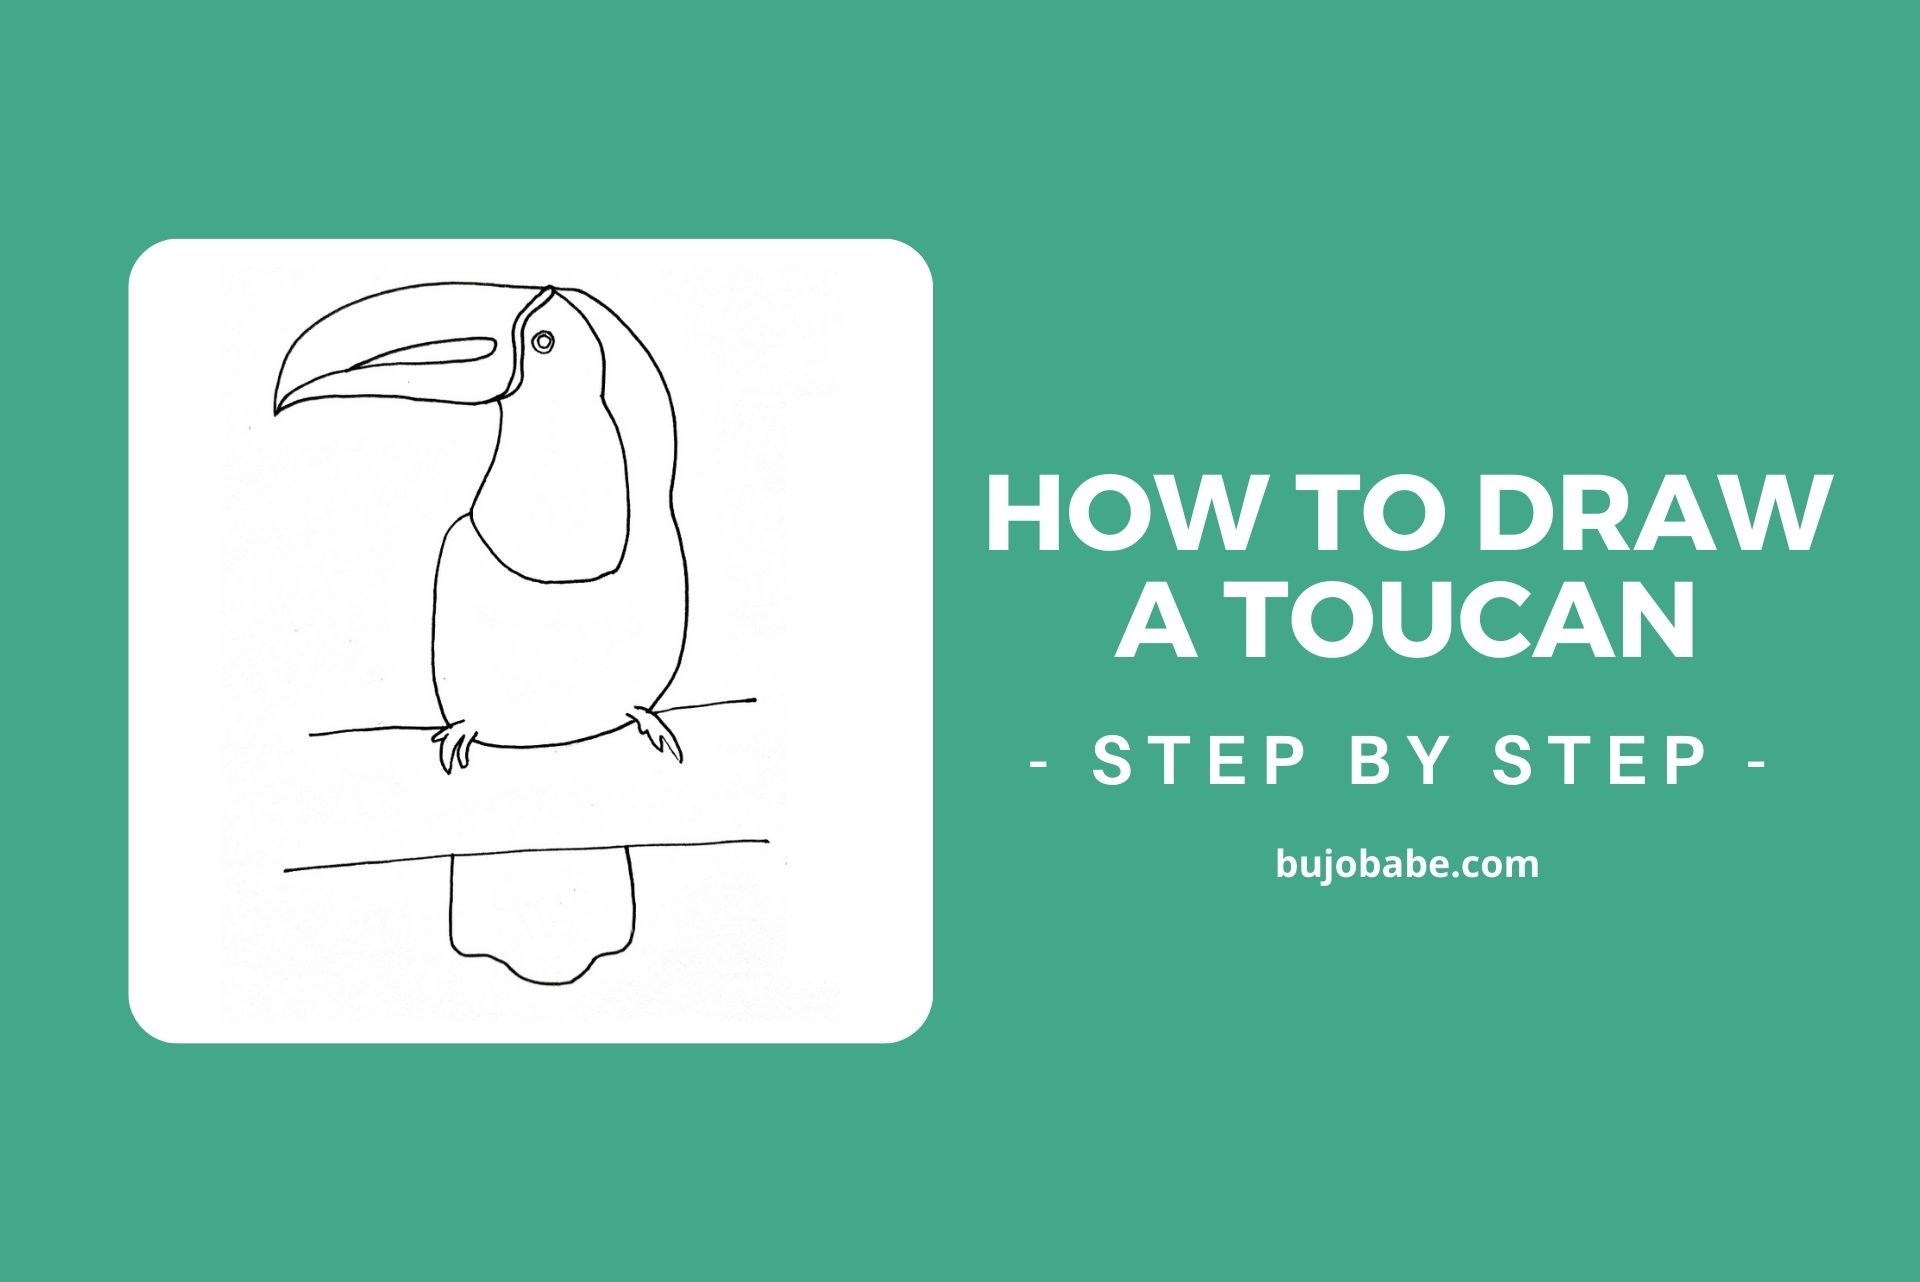 how to draw a toucan step by step